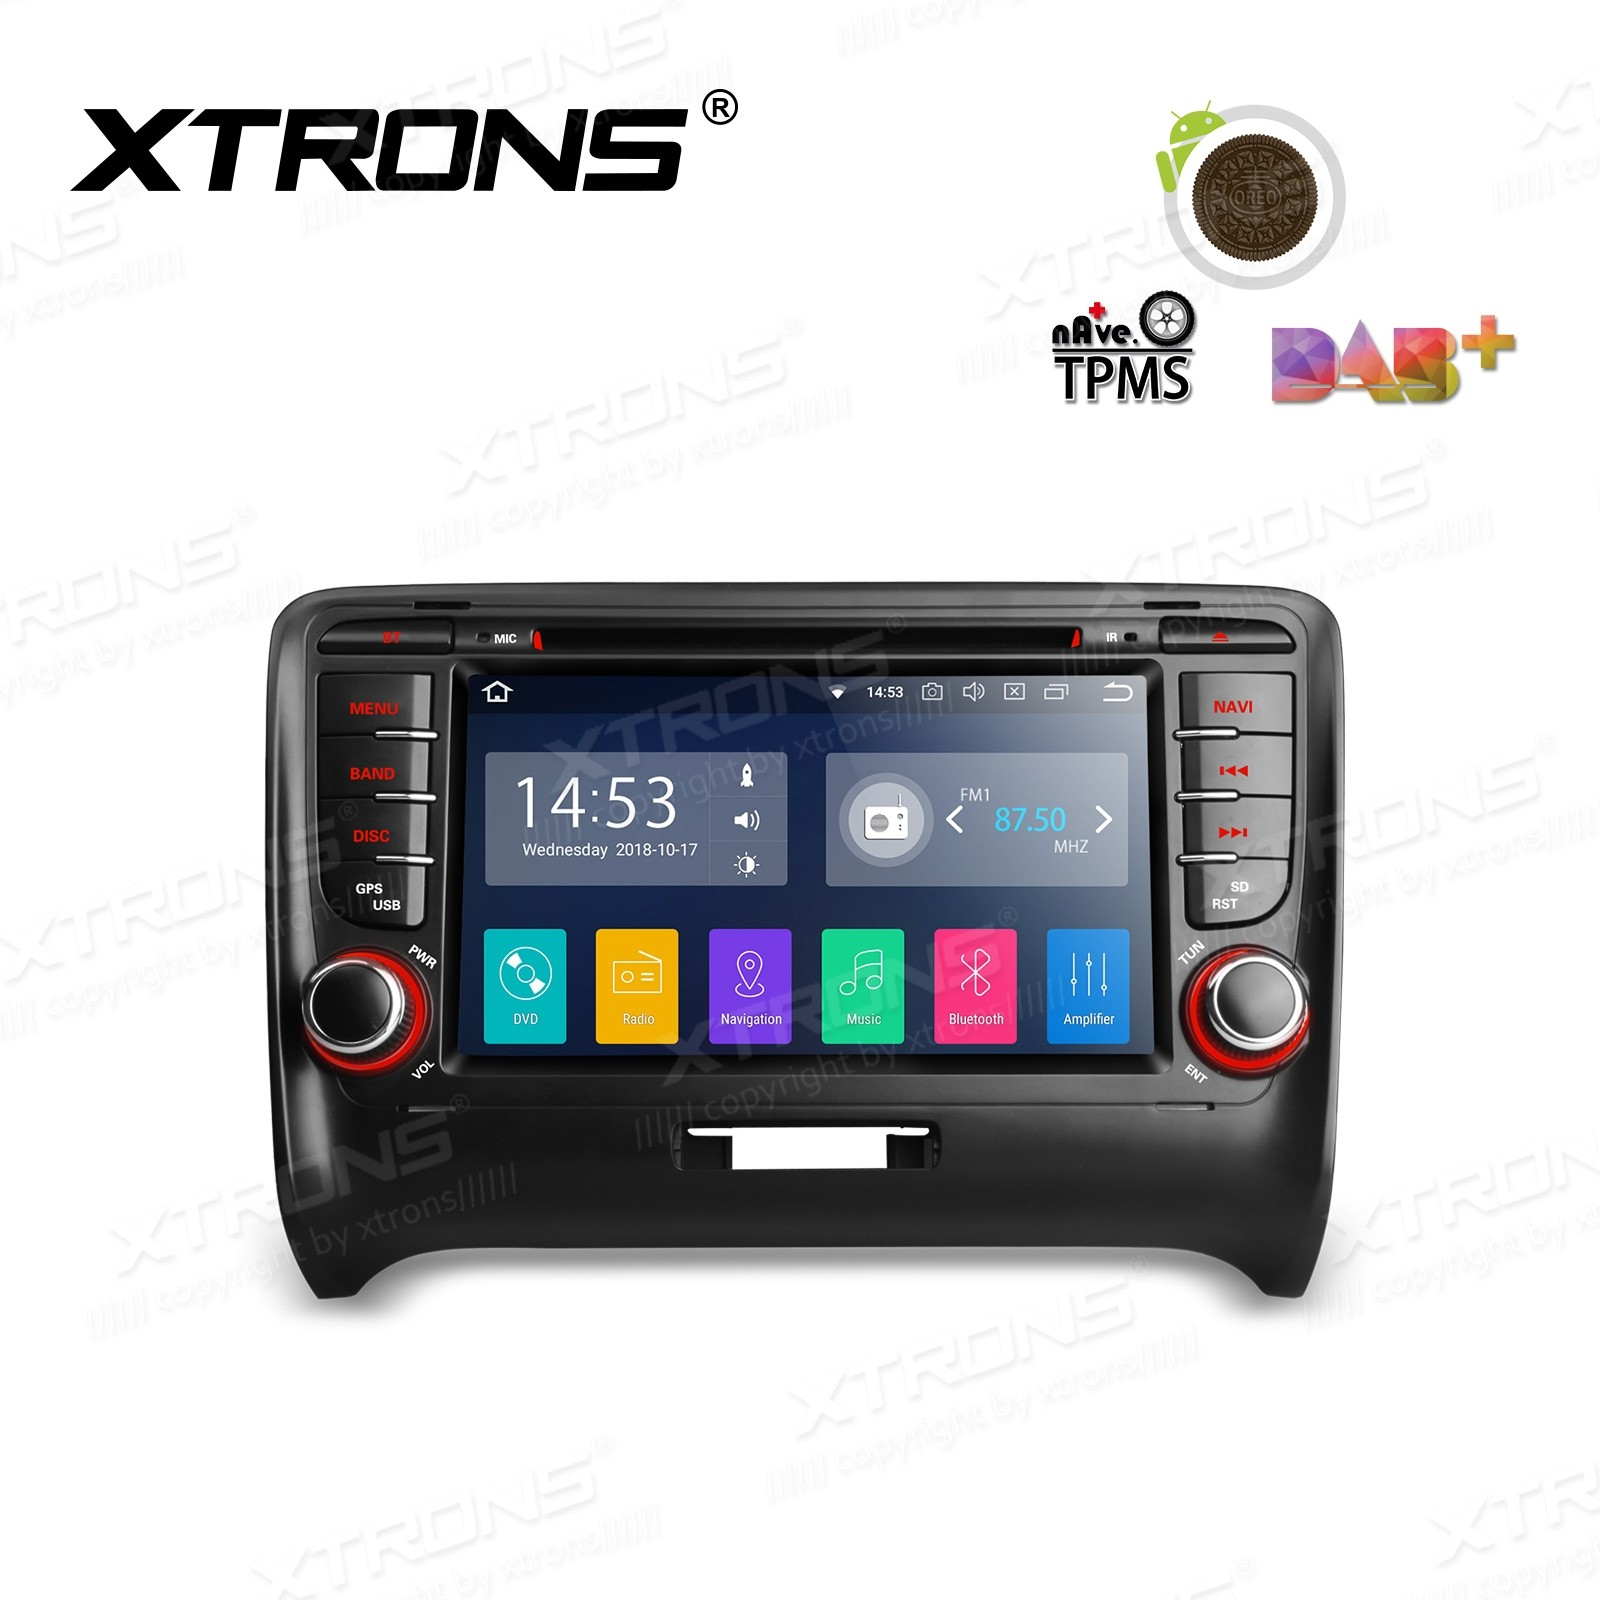 """7""""Android 8.1 Quad Core 16GB ROM + 2G RAM car stereo multimedia navigation system with Full RCA Output Costom Fit for Audi"""